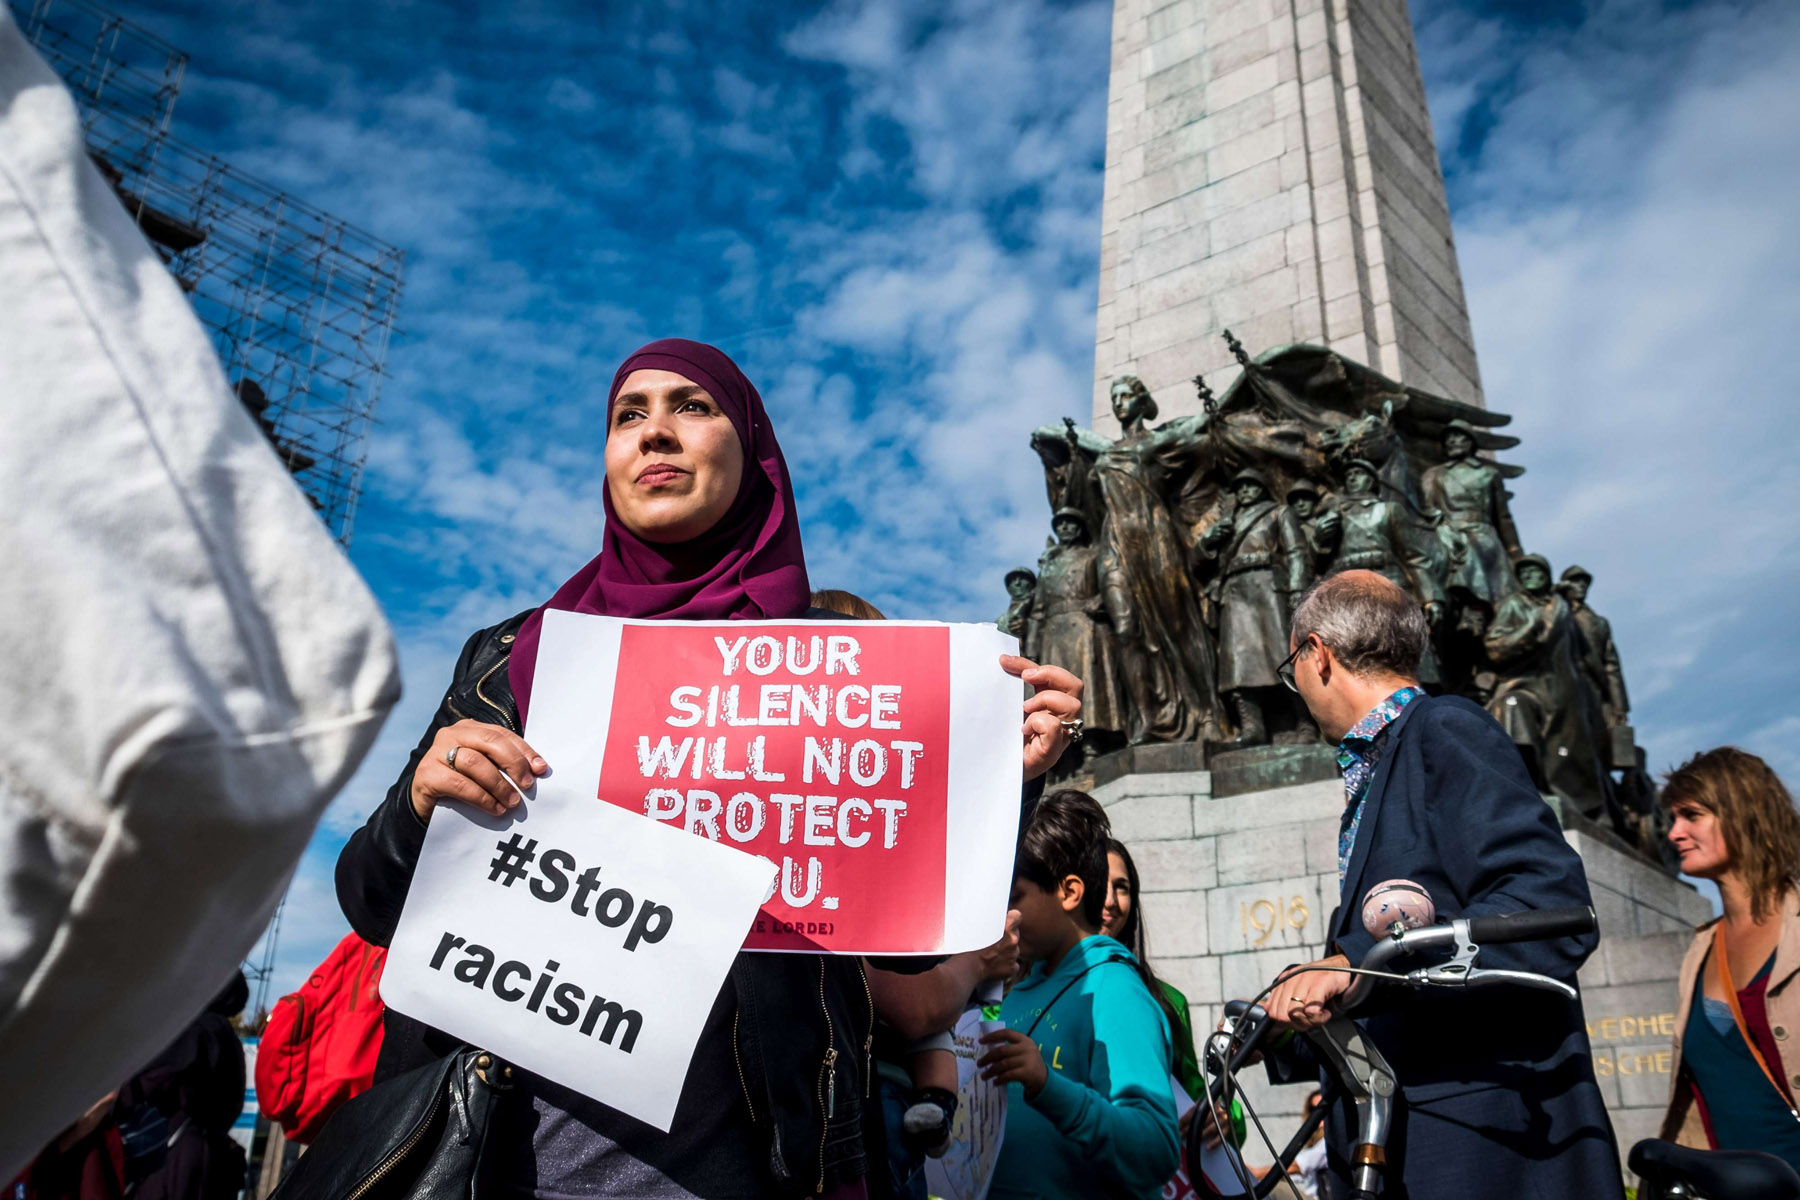 Uphill battle. A Muslim woman holds posters as she protests against 'hate and islamophobia' in Brussels, last September 9. (AFP)